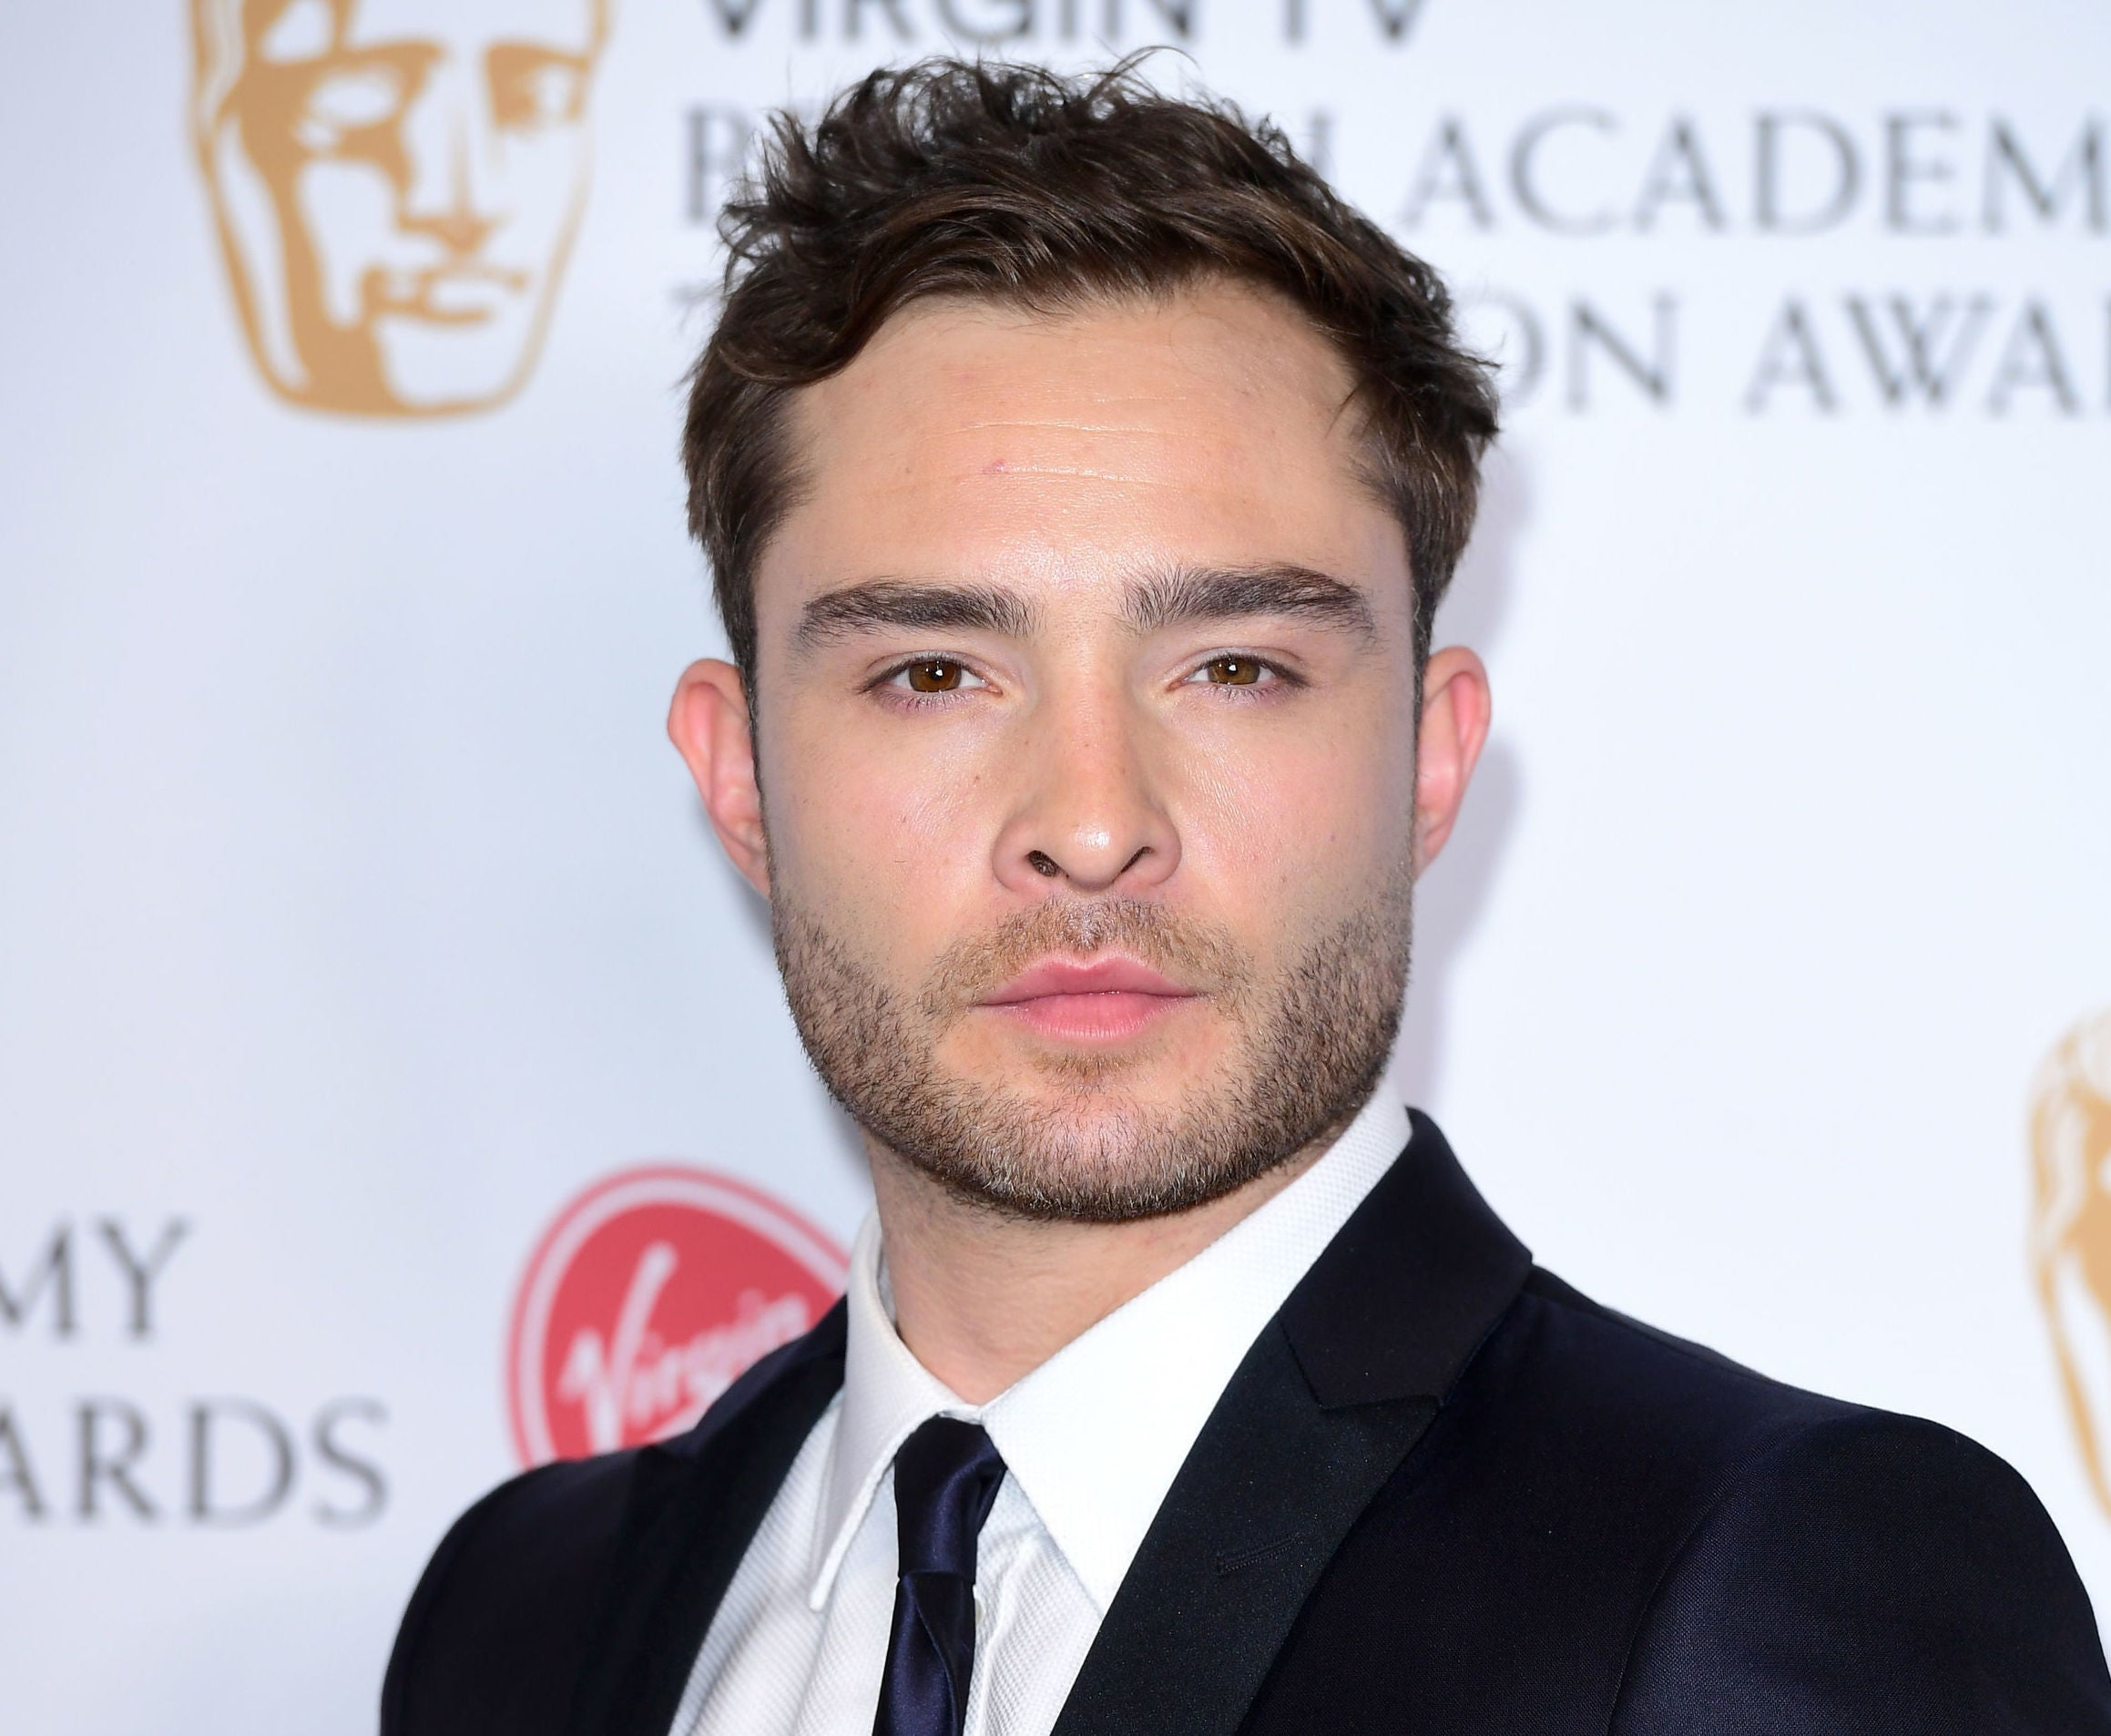 Ed Westwick will not be prosecuted over sexual assault allegations